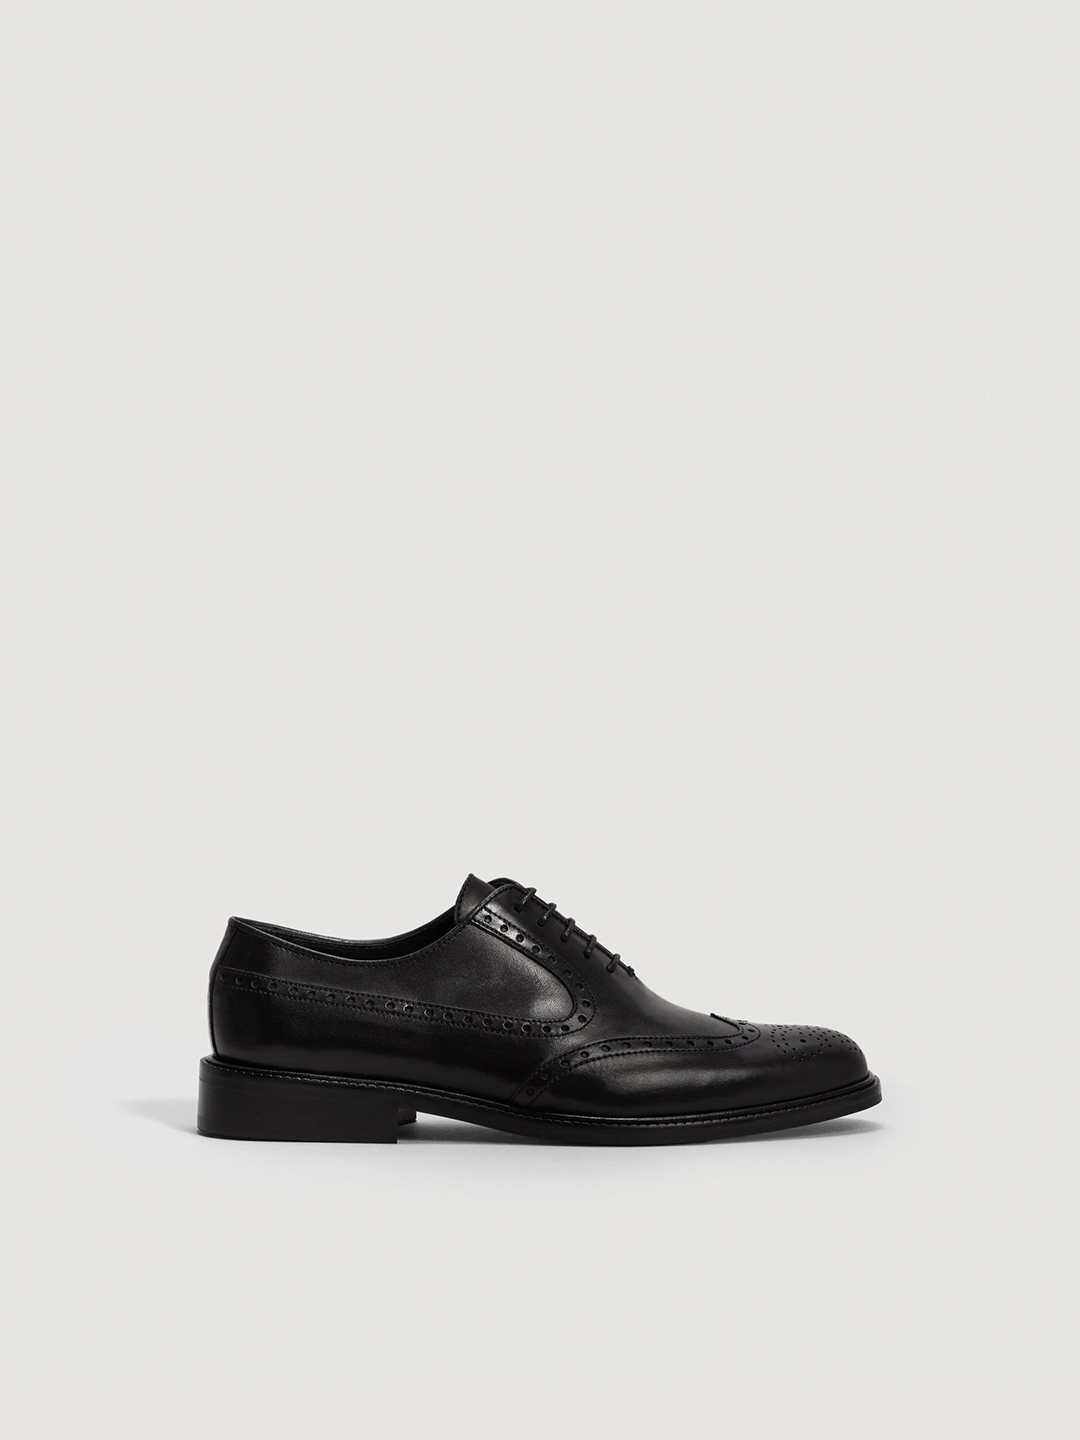 03e5d8a7d88 Buy MANGO MAN Black Leather Formal Oxfords - Formal Shoes for Men ...